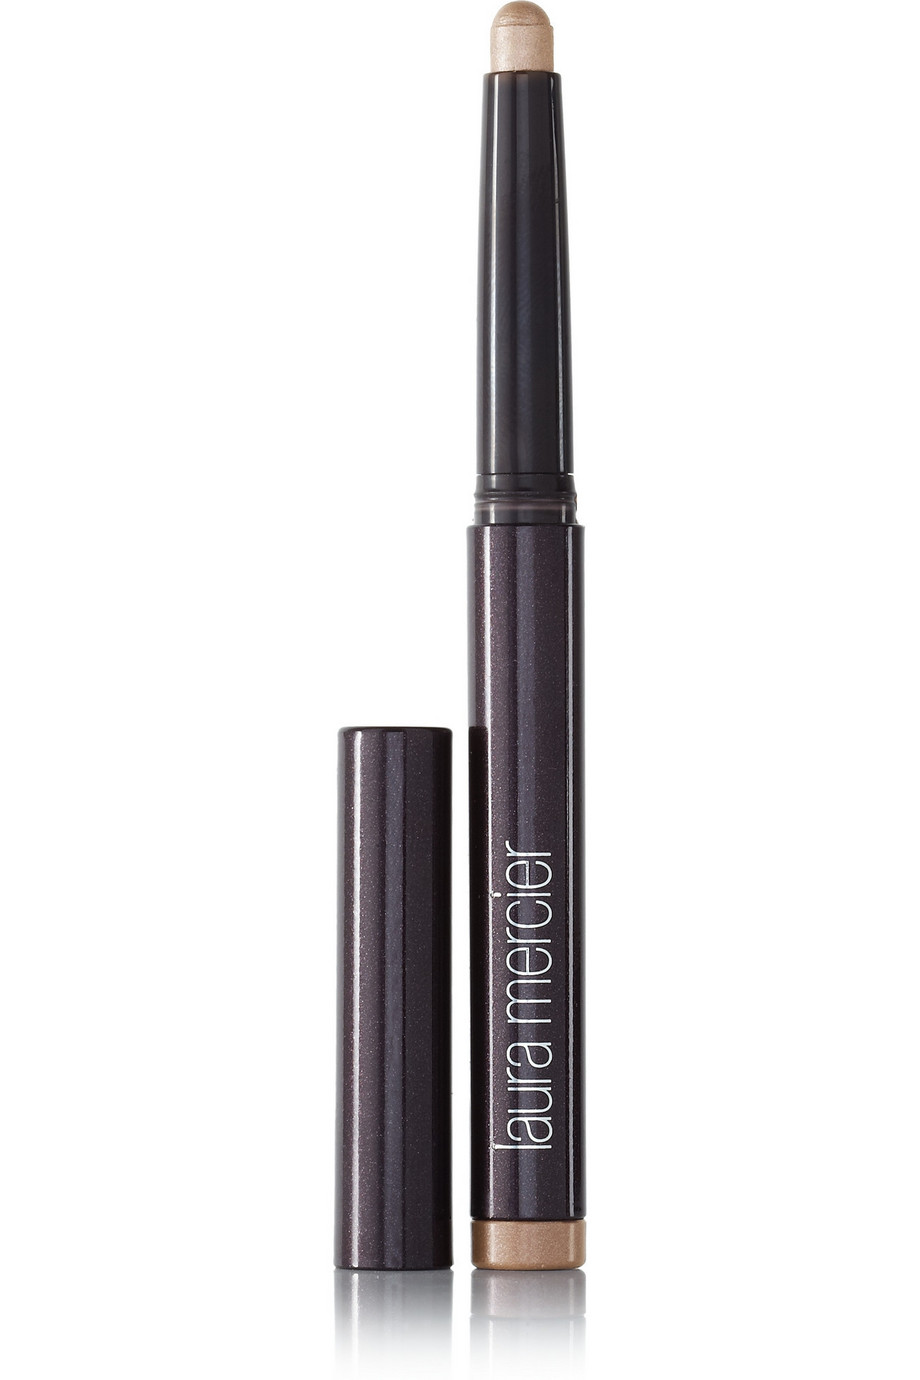 Laura Mercier Caviar Stick Eye Color - Rosegold